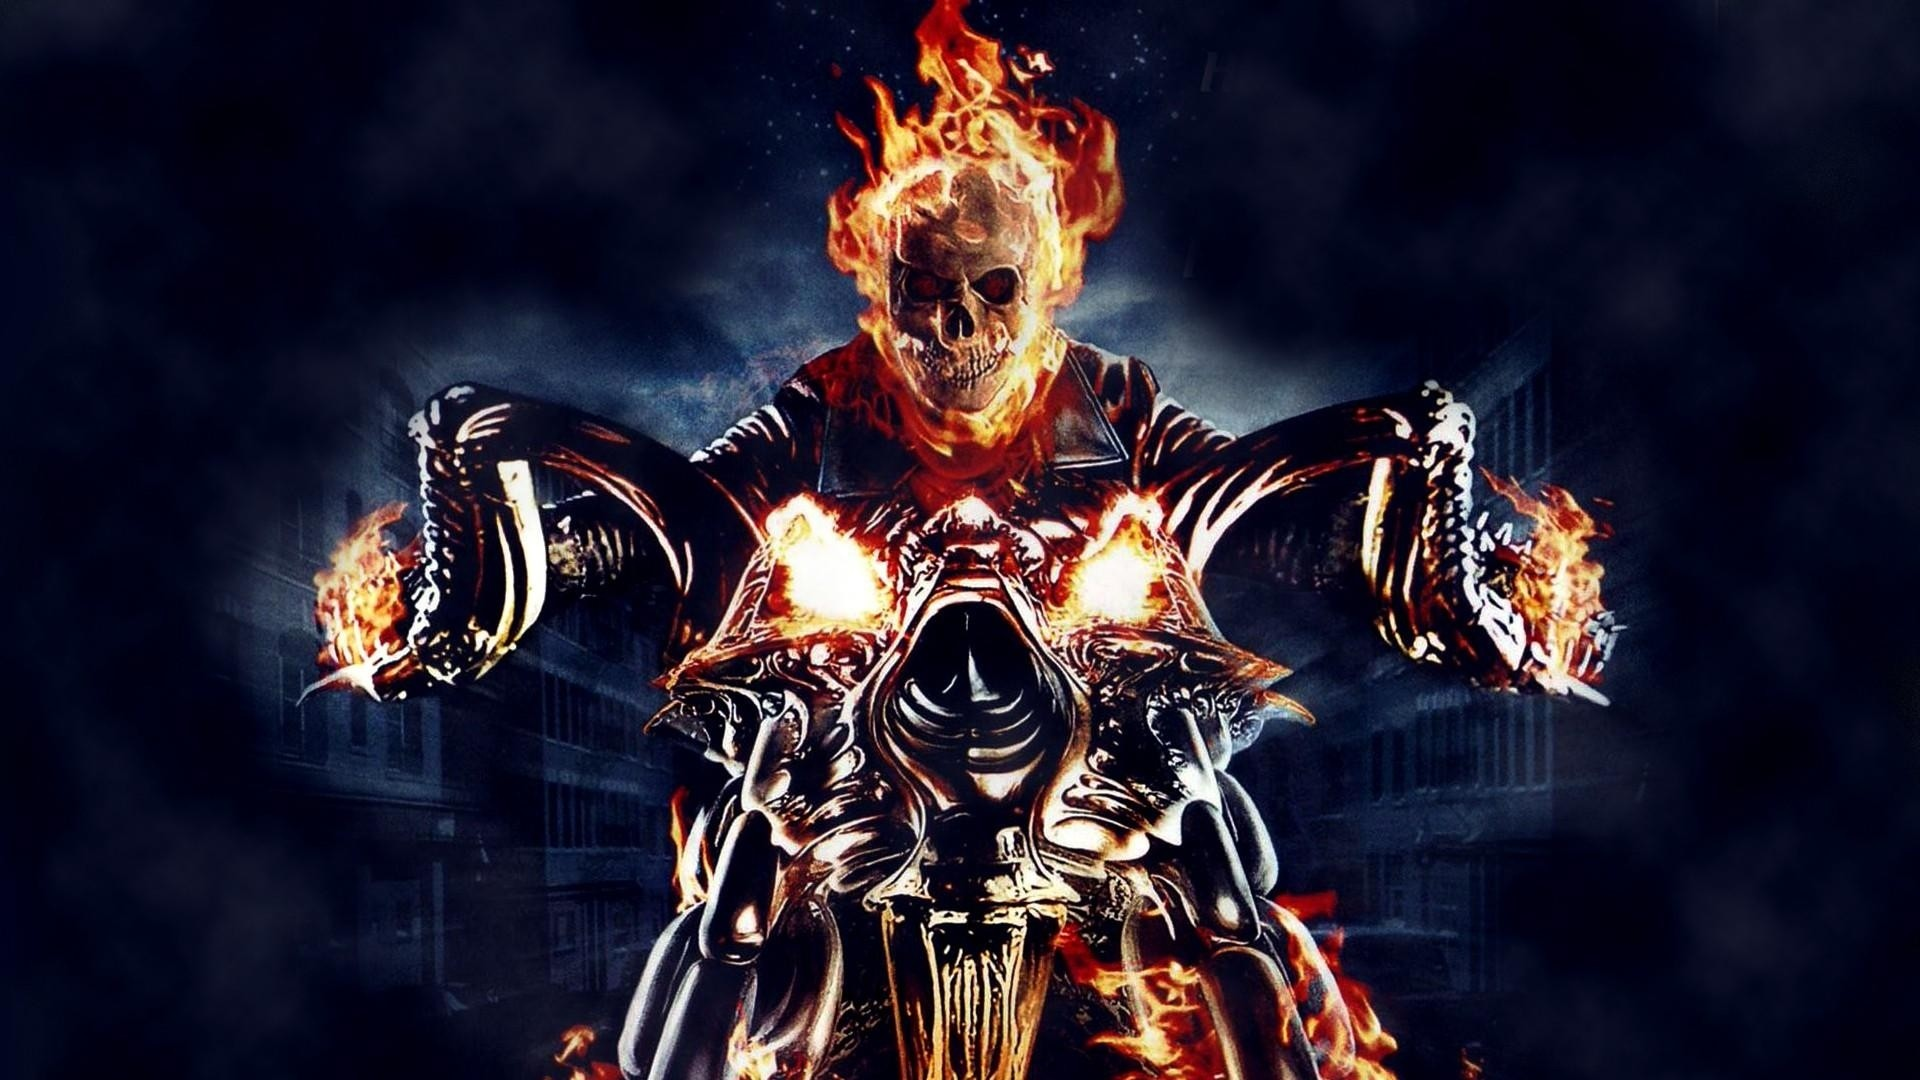 1920x1080 Download-1920×1080-Ghost-rider-Motorcycle-Fire-Skull-wallpaper-wp2004771